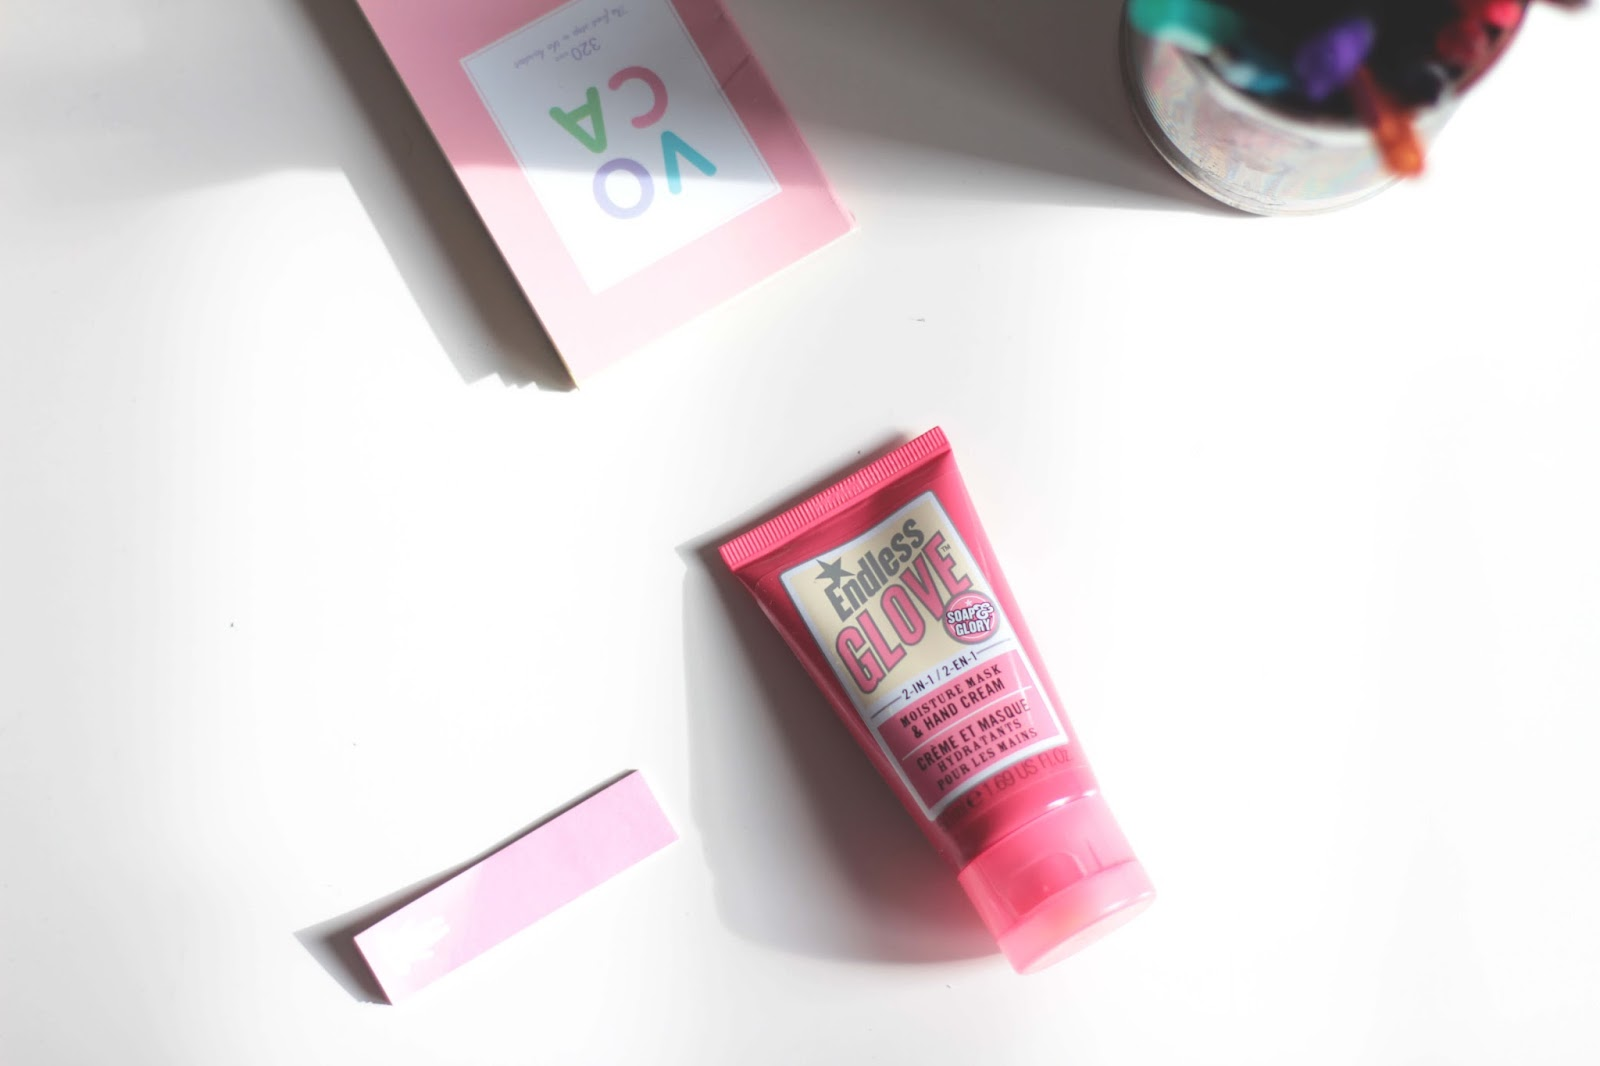 soap & glory endless glove 2 in 1 moisture mask and hand cream flatlay product shot